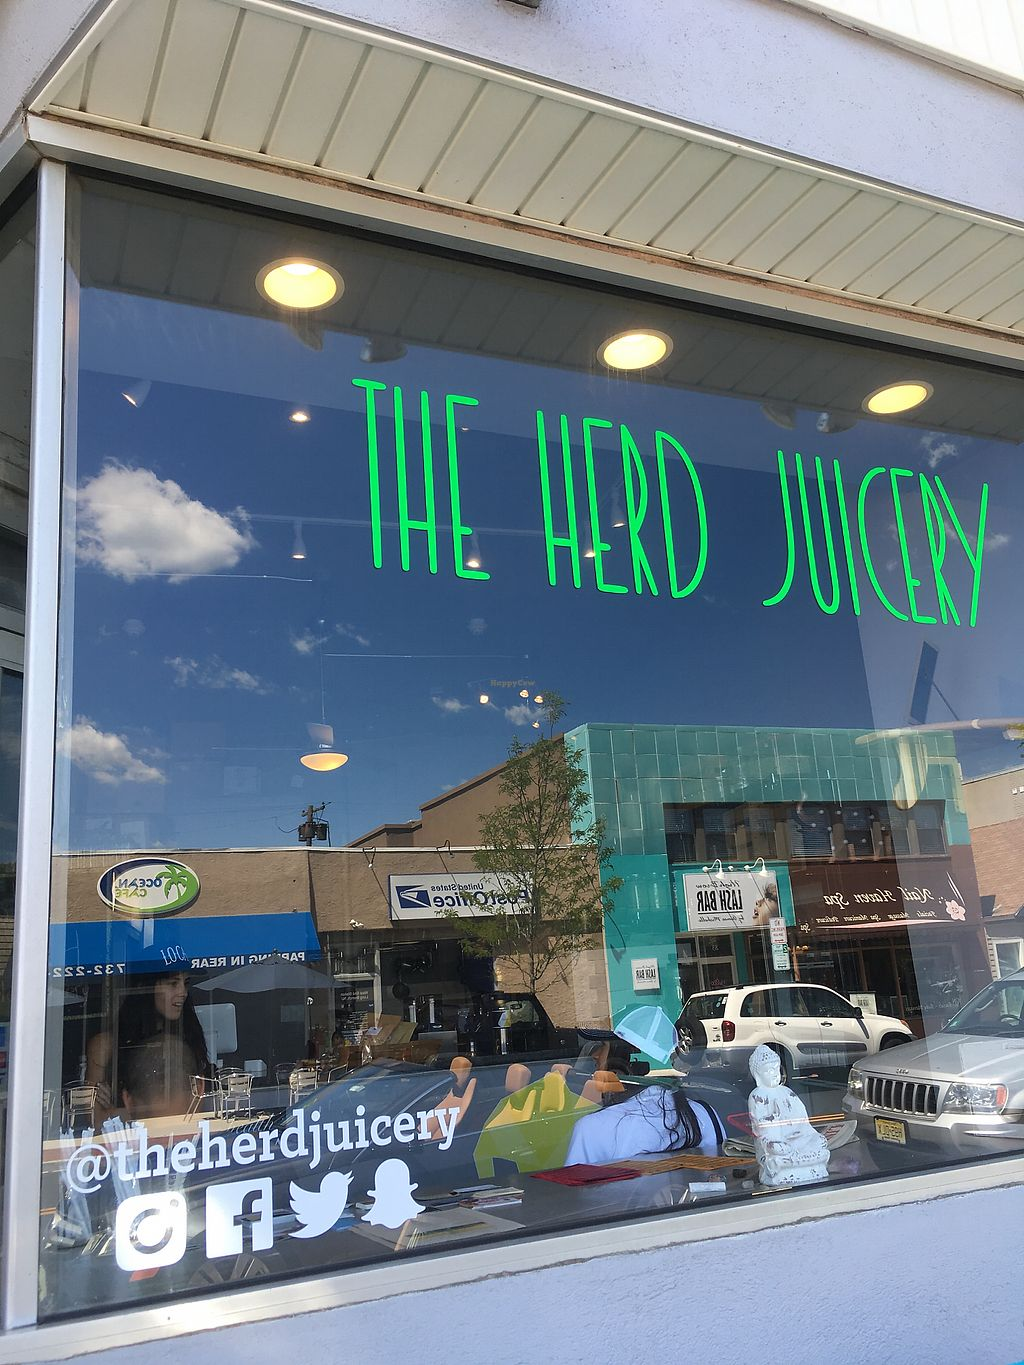 """Photo of The Herd Juicery  by <a href=""""/members/profile/Isamara"""">Isamara</a> <br/>Front <br/> June 26, 2017  - <a href='/contact/abuse/image/58788/273662'>Report</a>"""